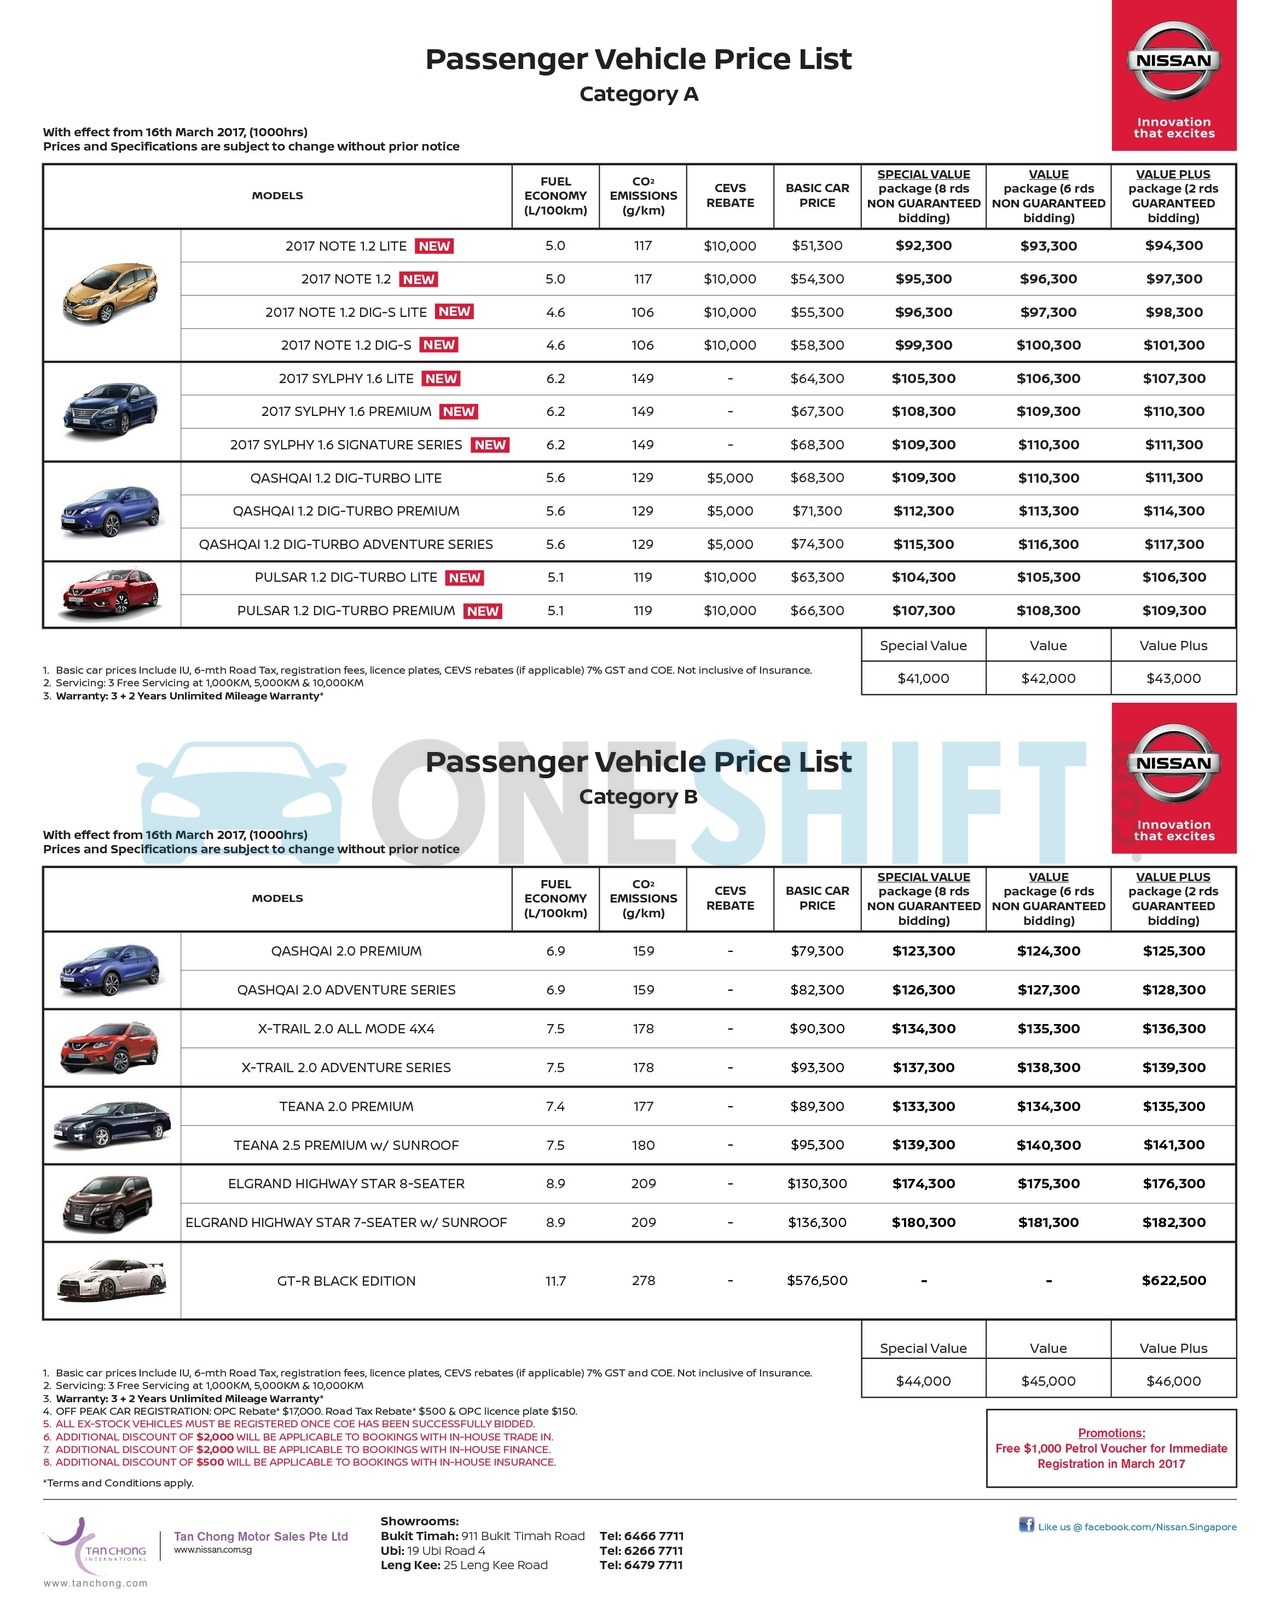 nissan Price List 3-16-2017 Page 1